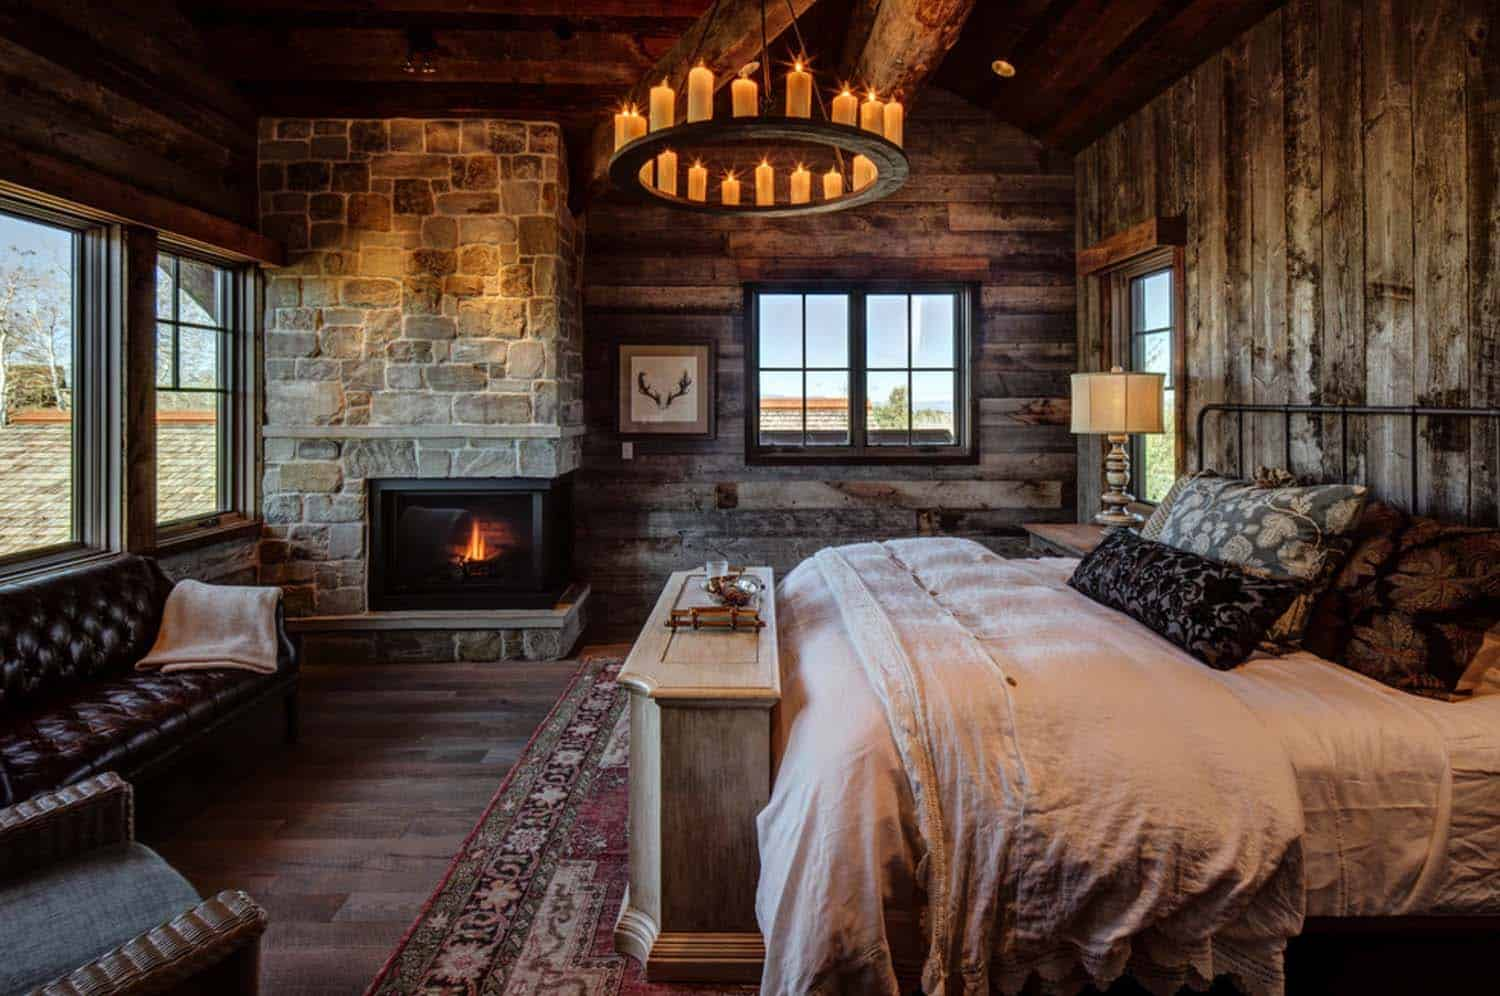 decorating cabin bedroom small ideas stunning interior design simple and log neat